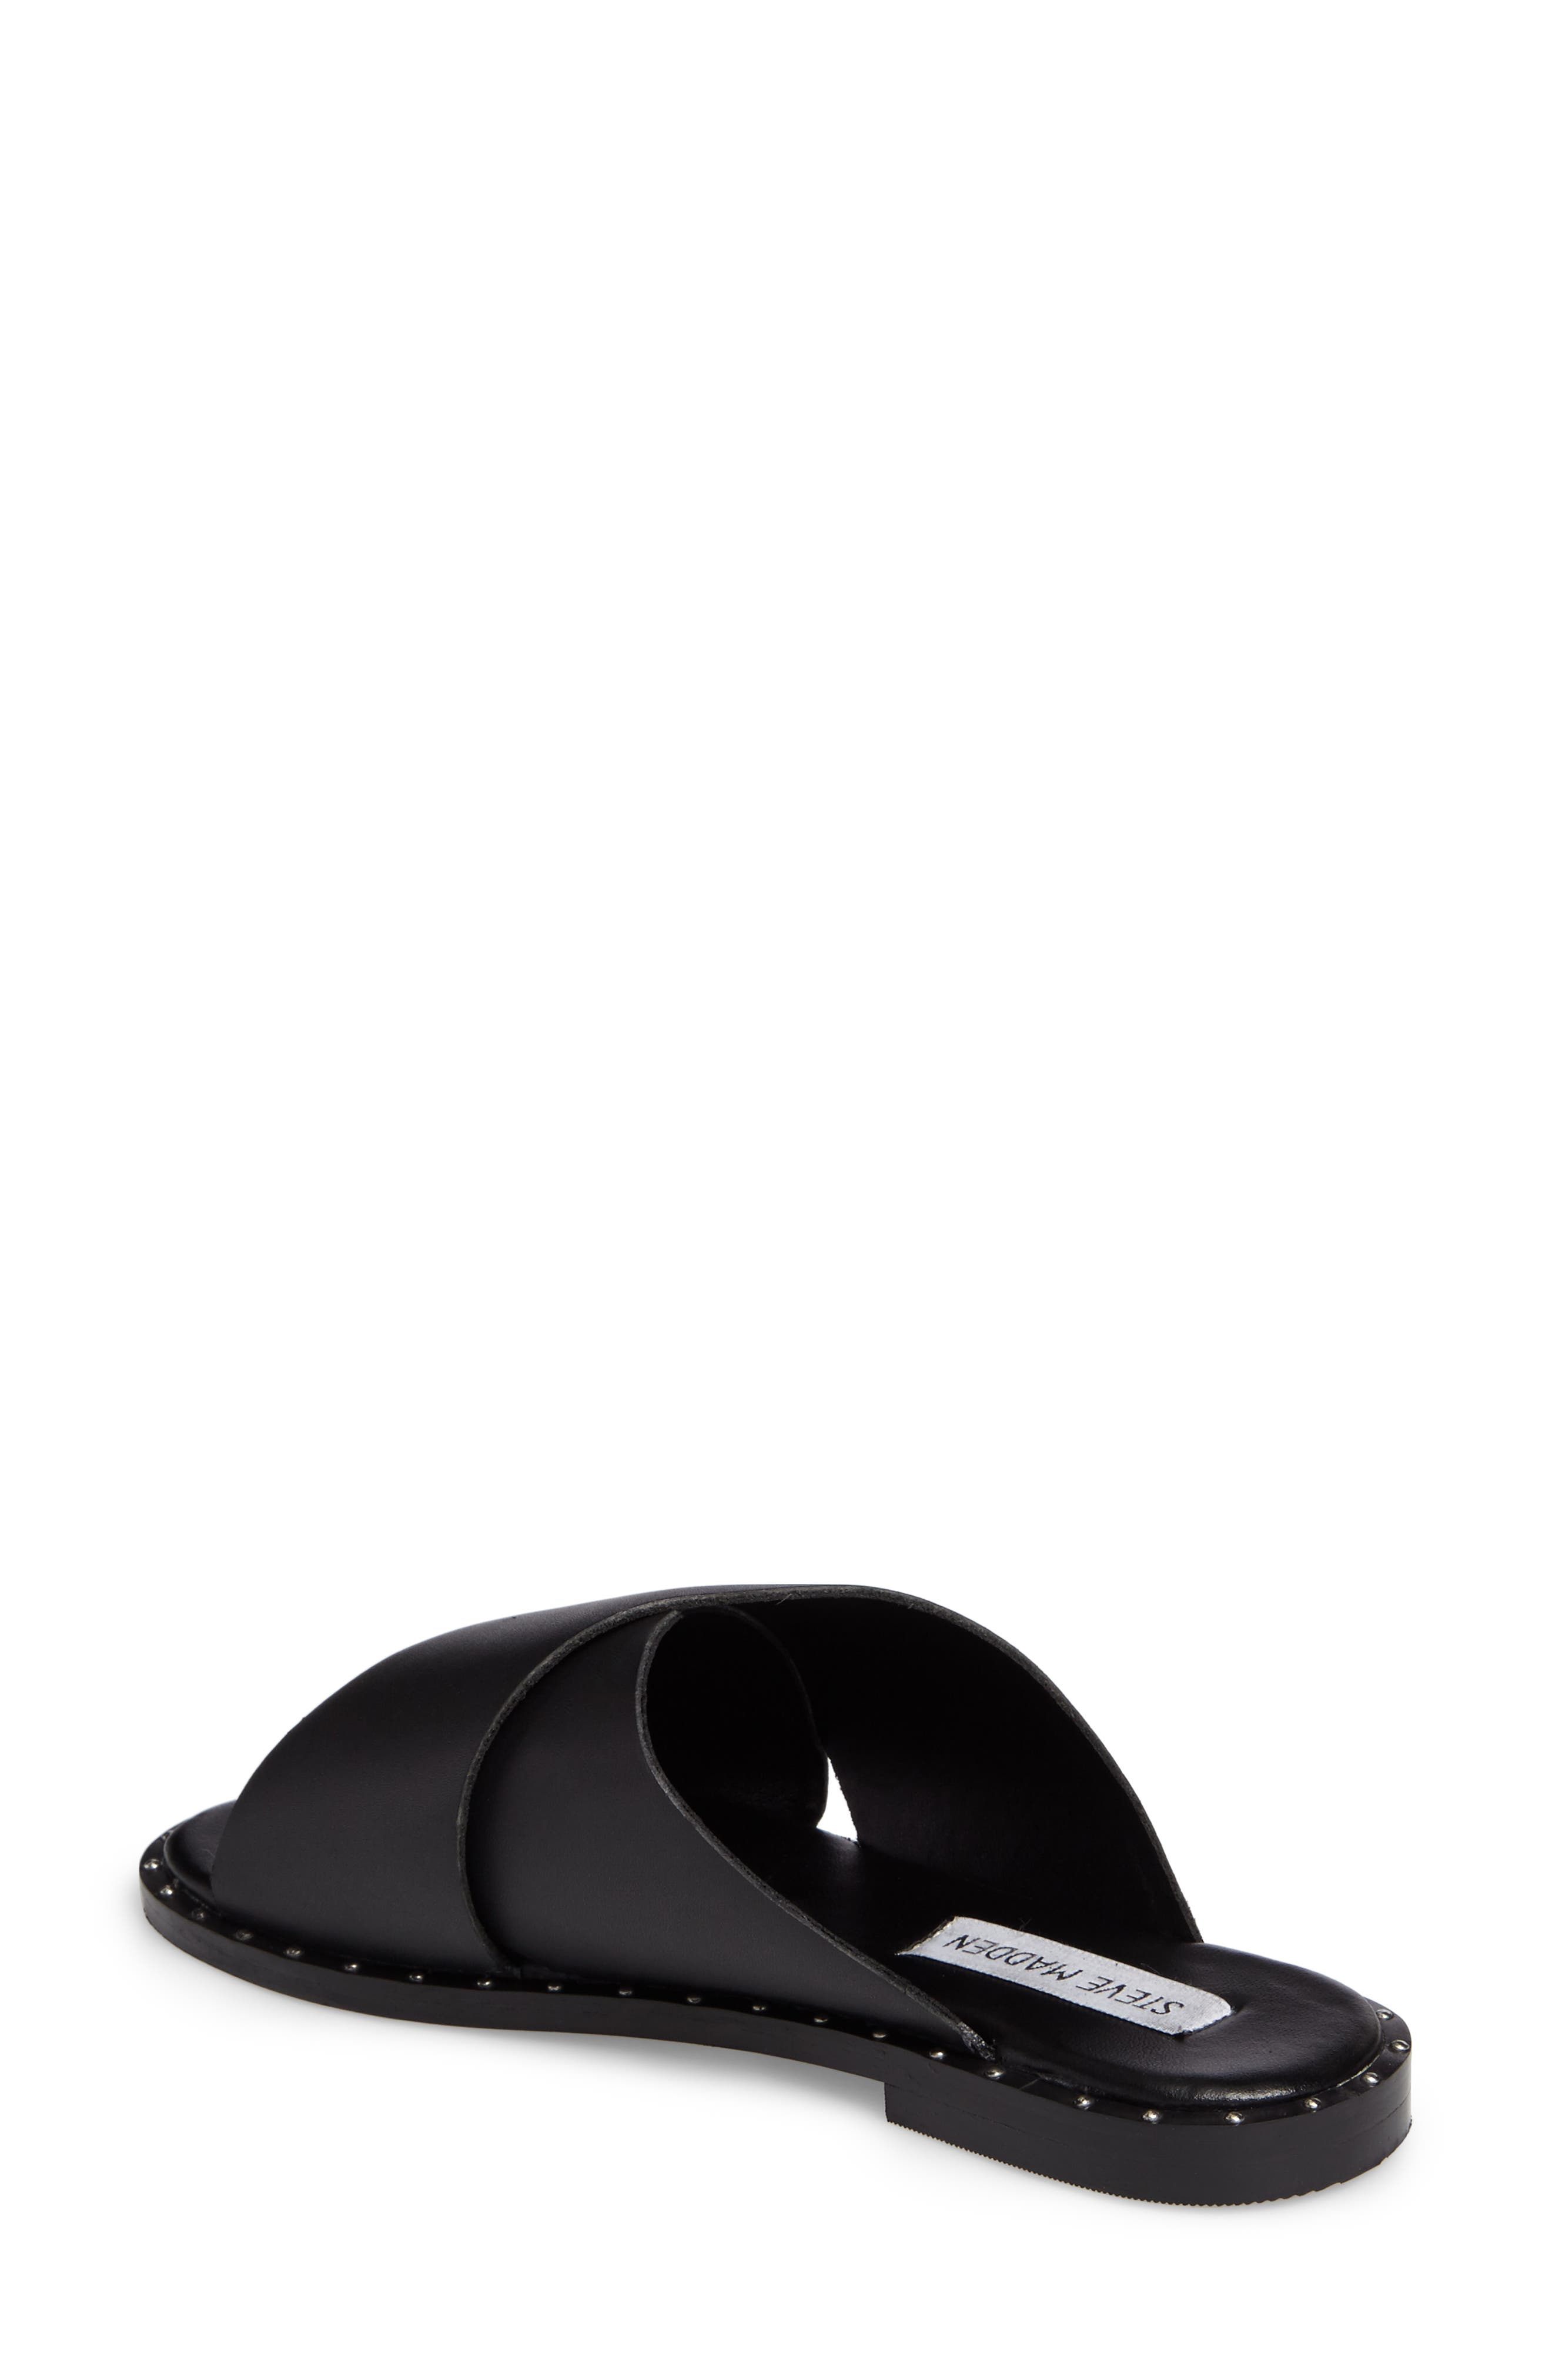 Alpha Slide Sandal,                             Alternate thumbnail 2, color,                             Black